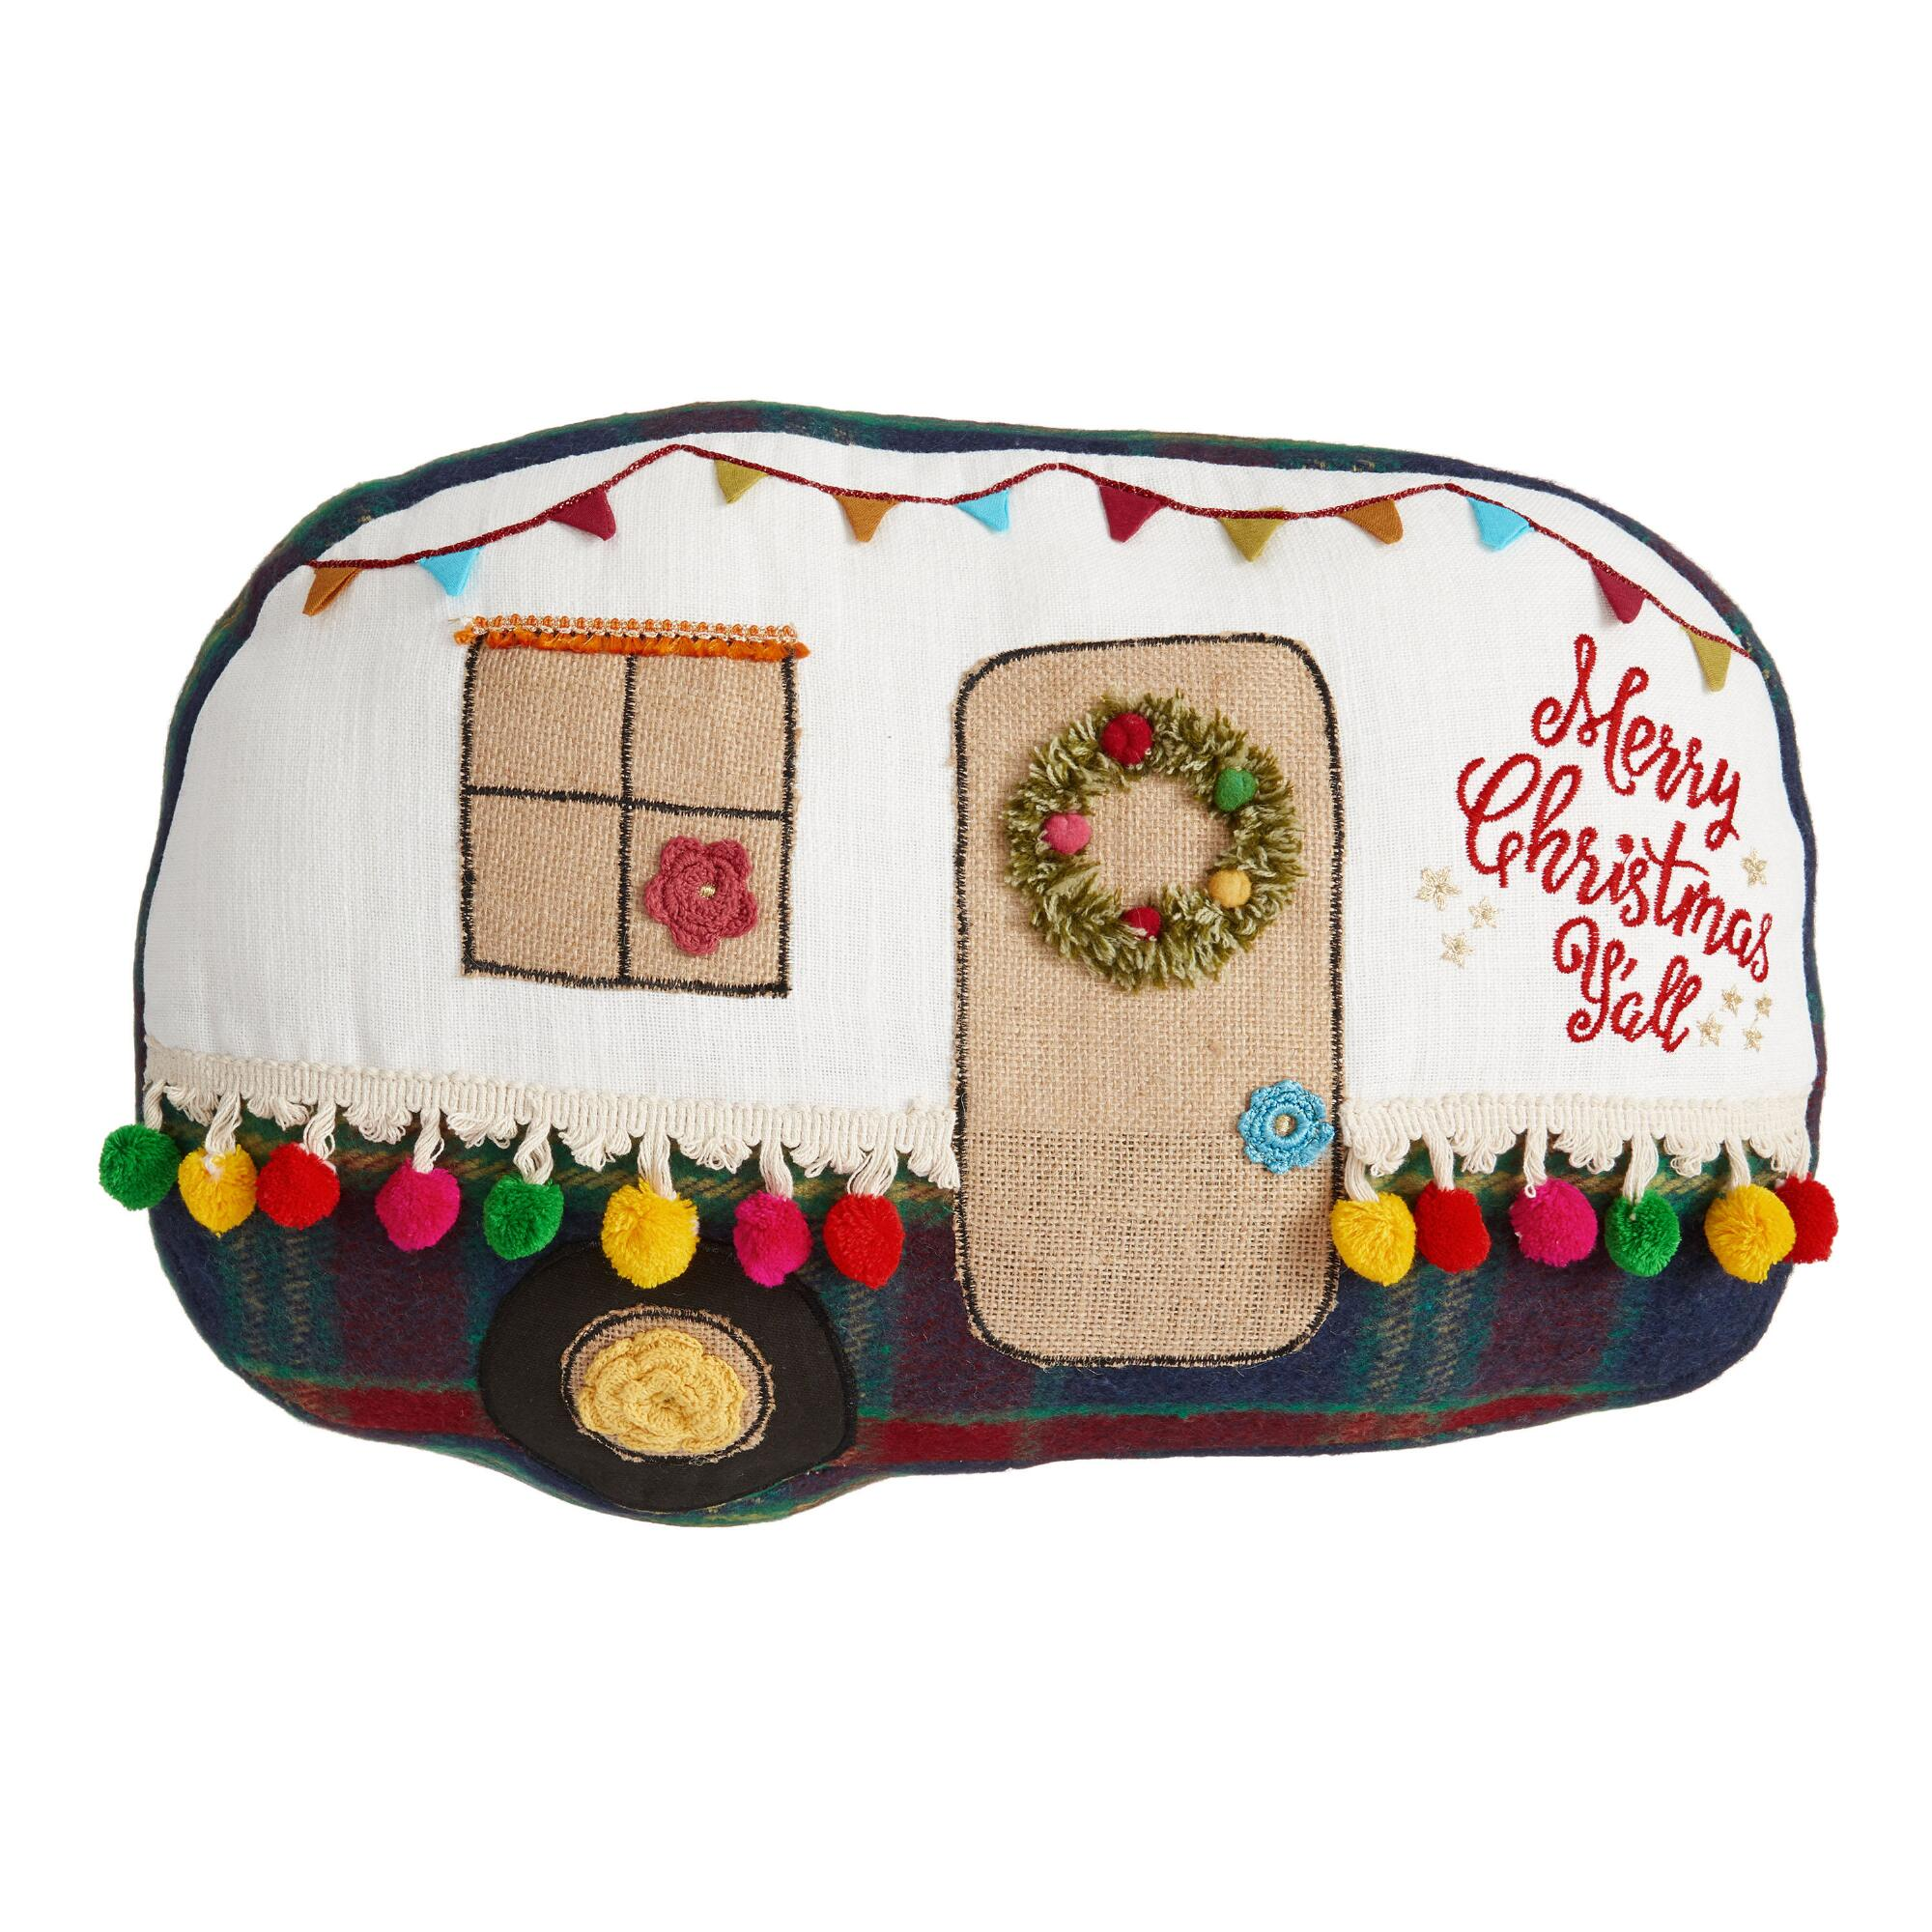 Merry Christmas Y'all Retro Camper Throw Pillow by World Market